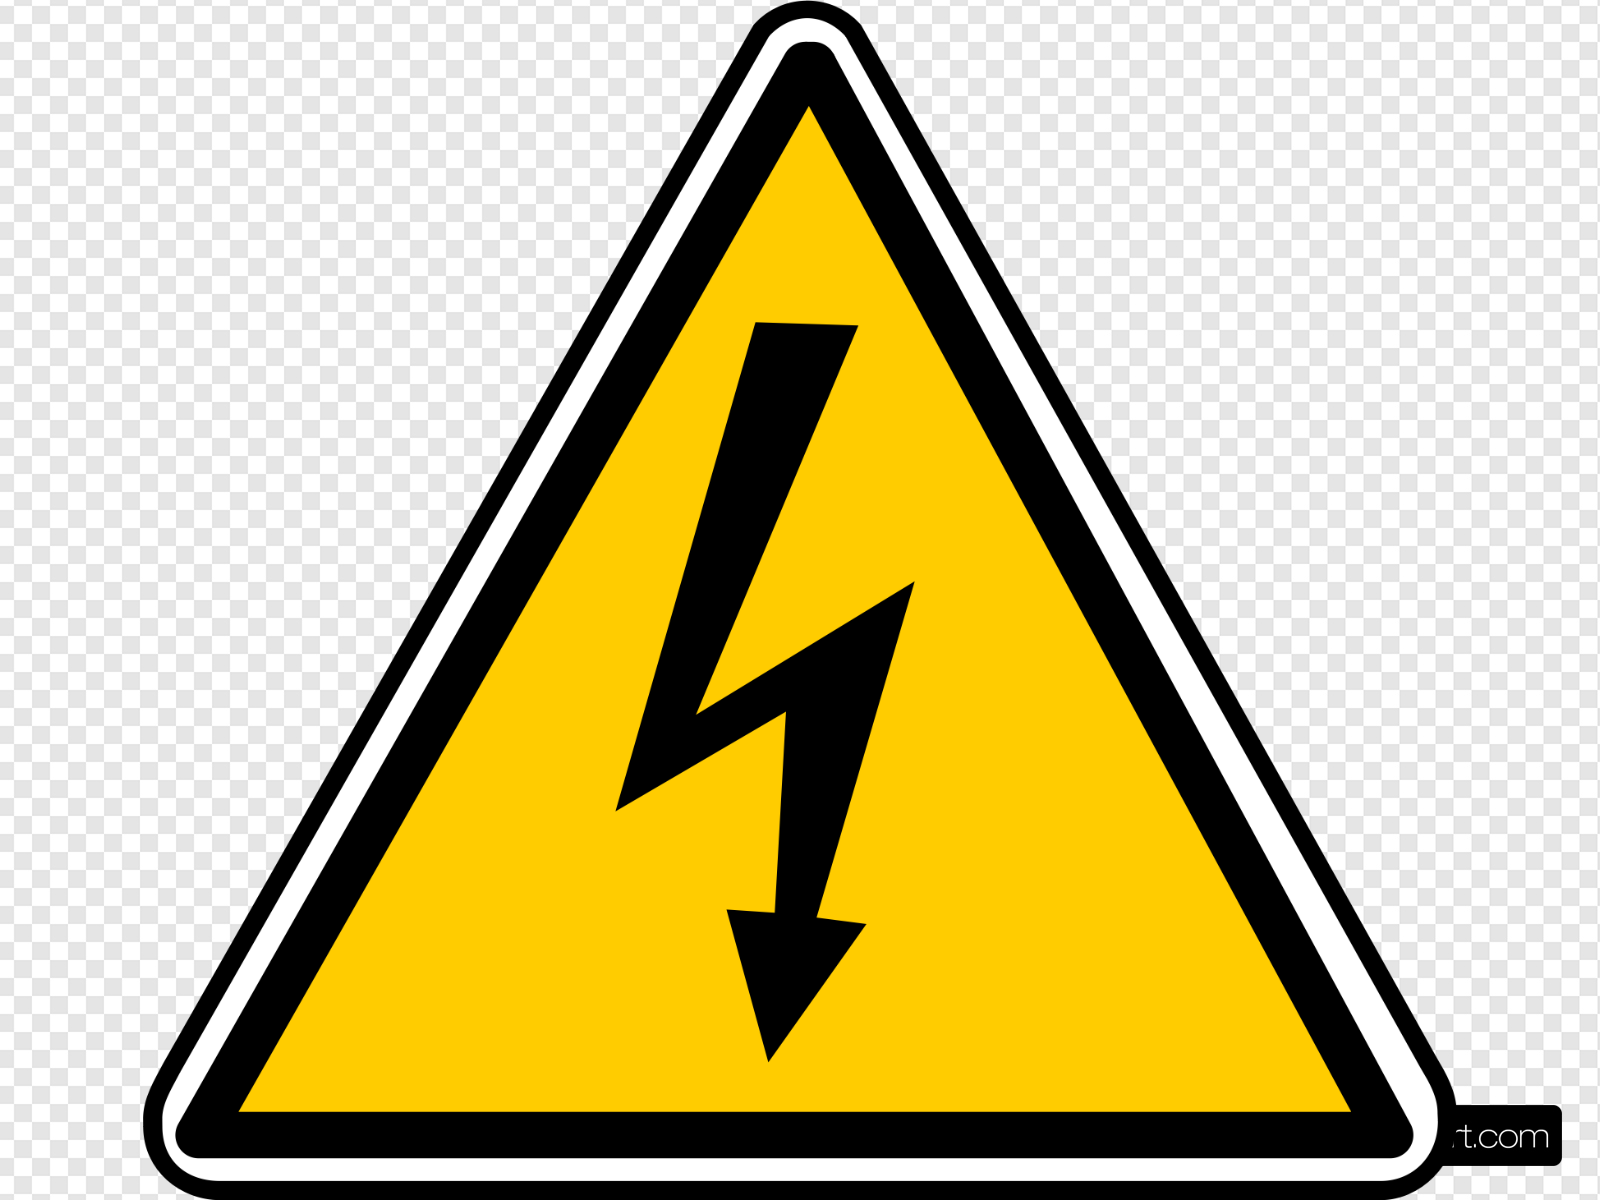 Warning clip art icon. Electricity clipart svg